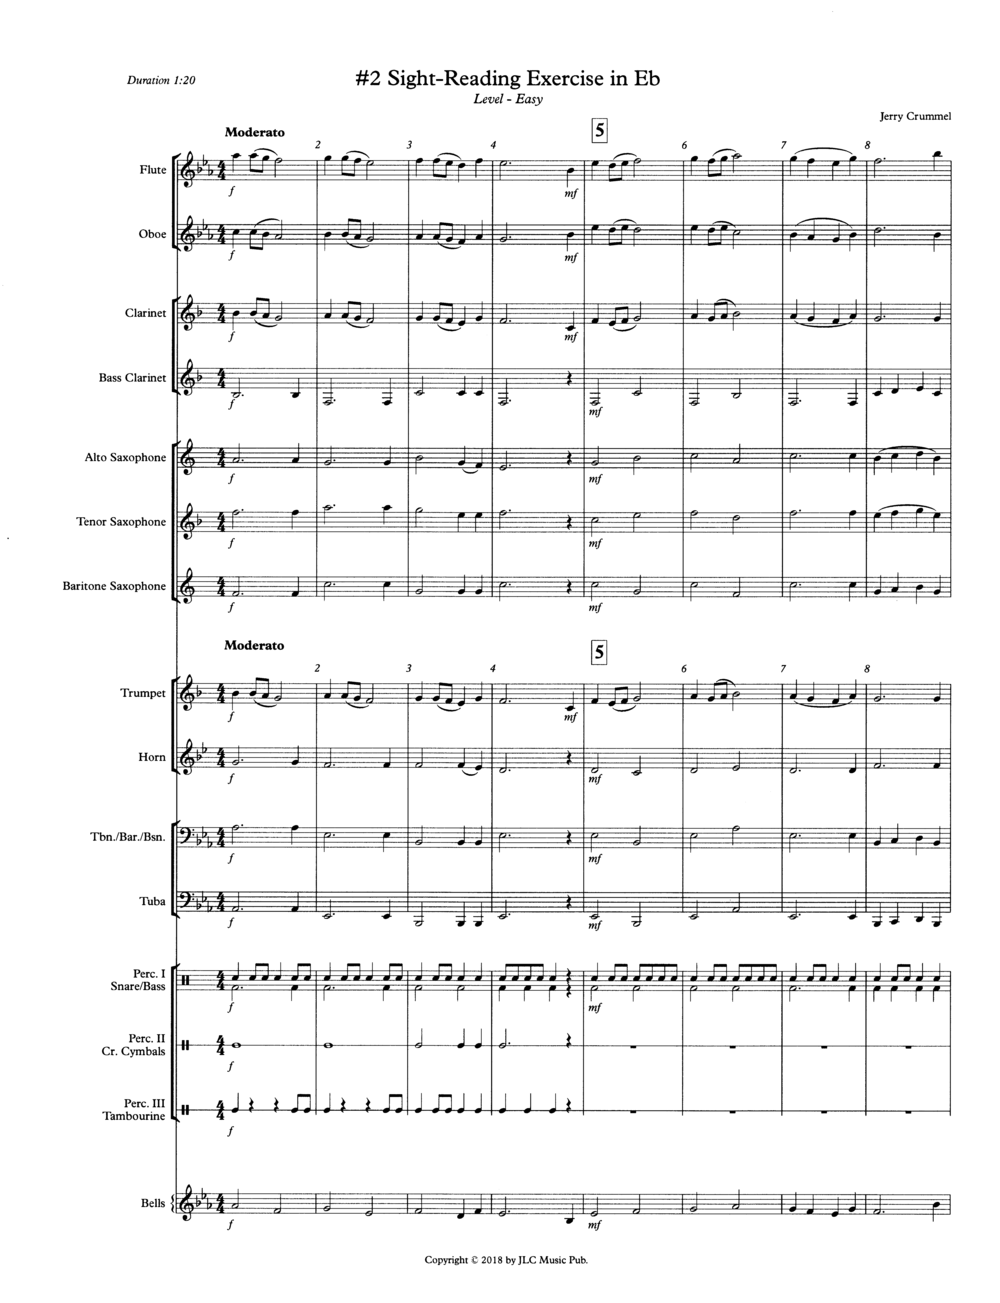 #2 Sight-Reading Exercise in Eb02122019.png